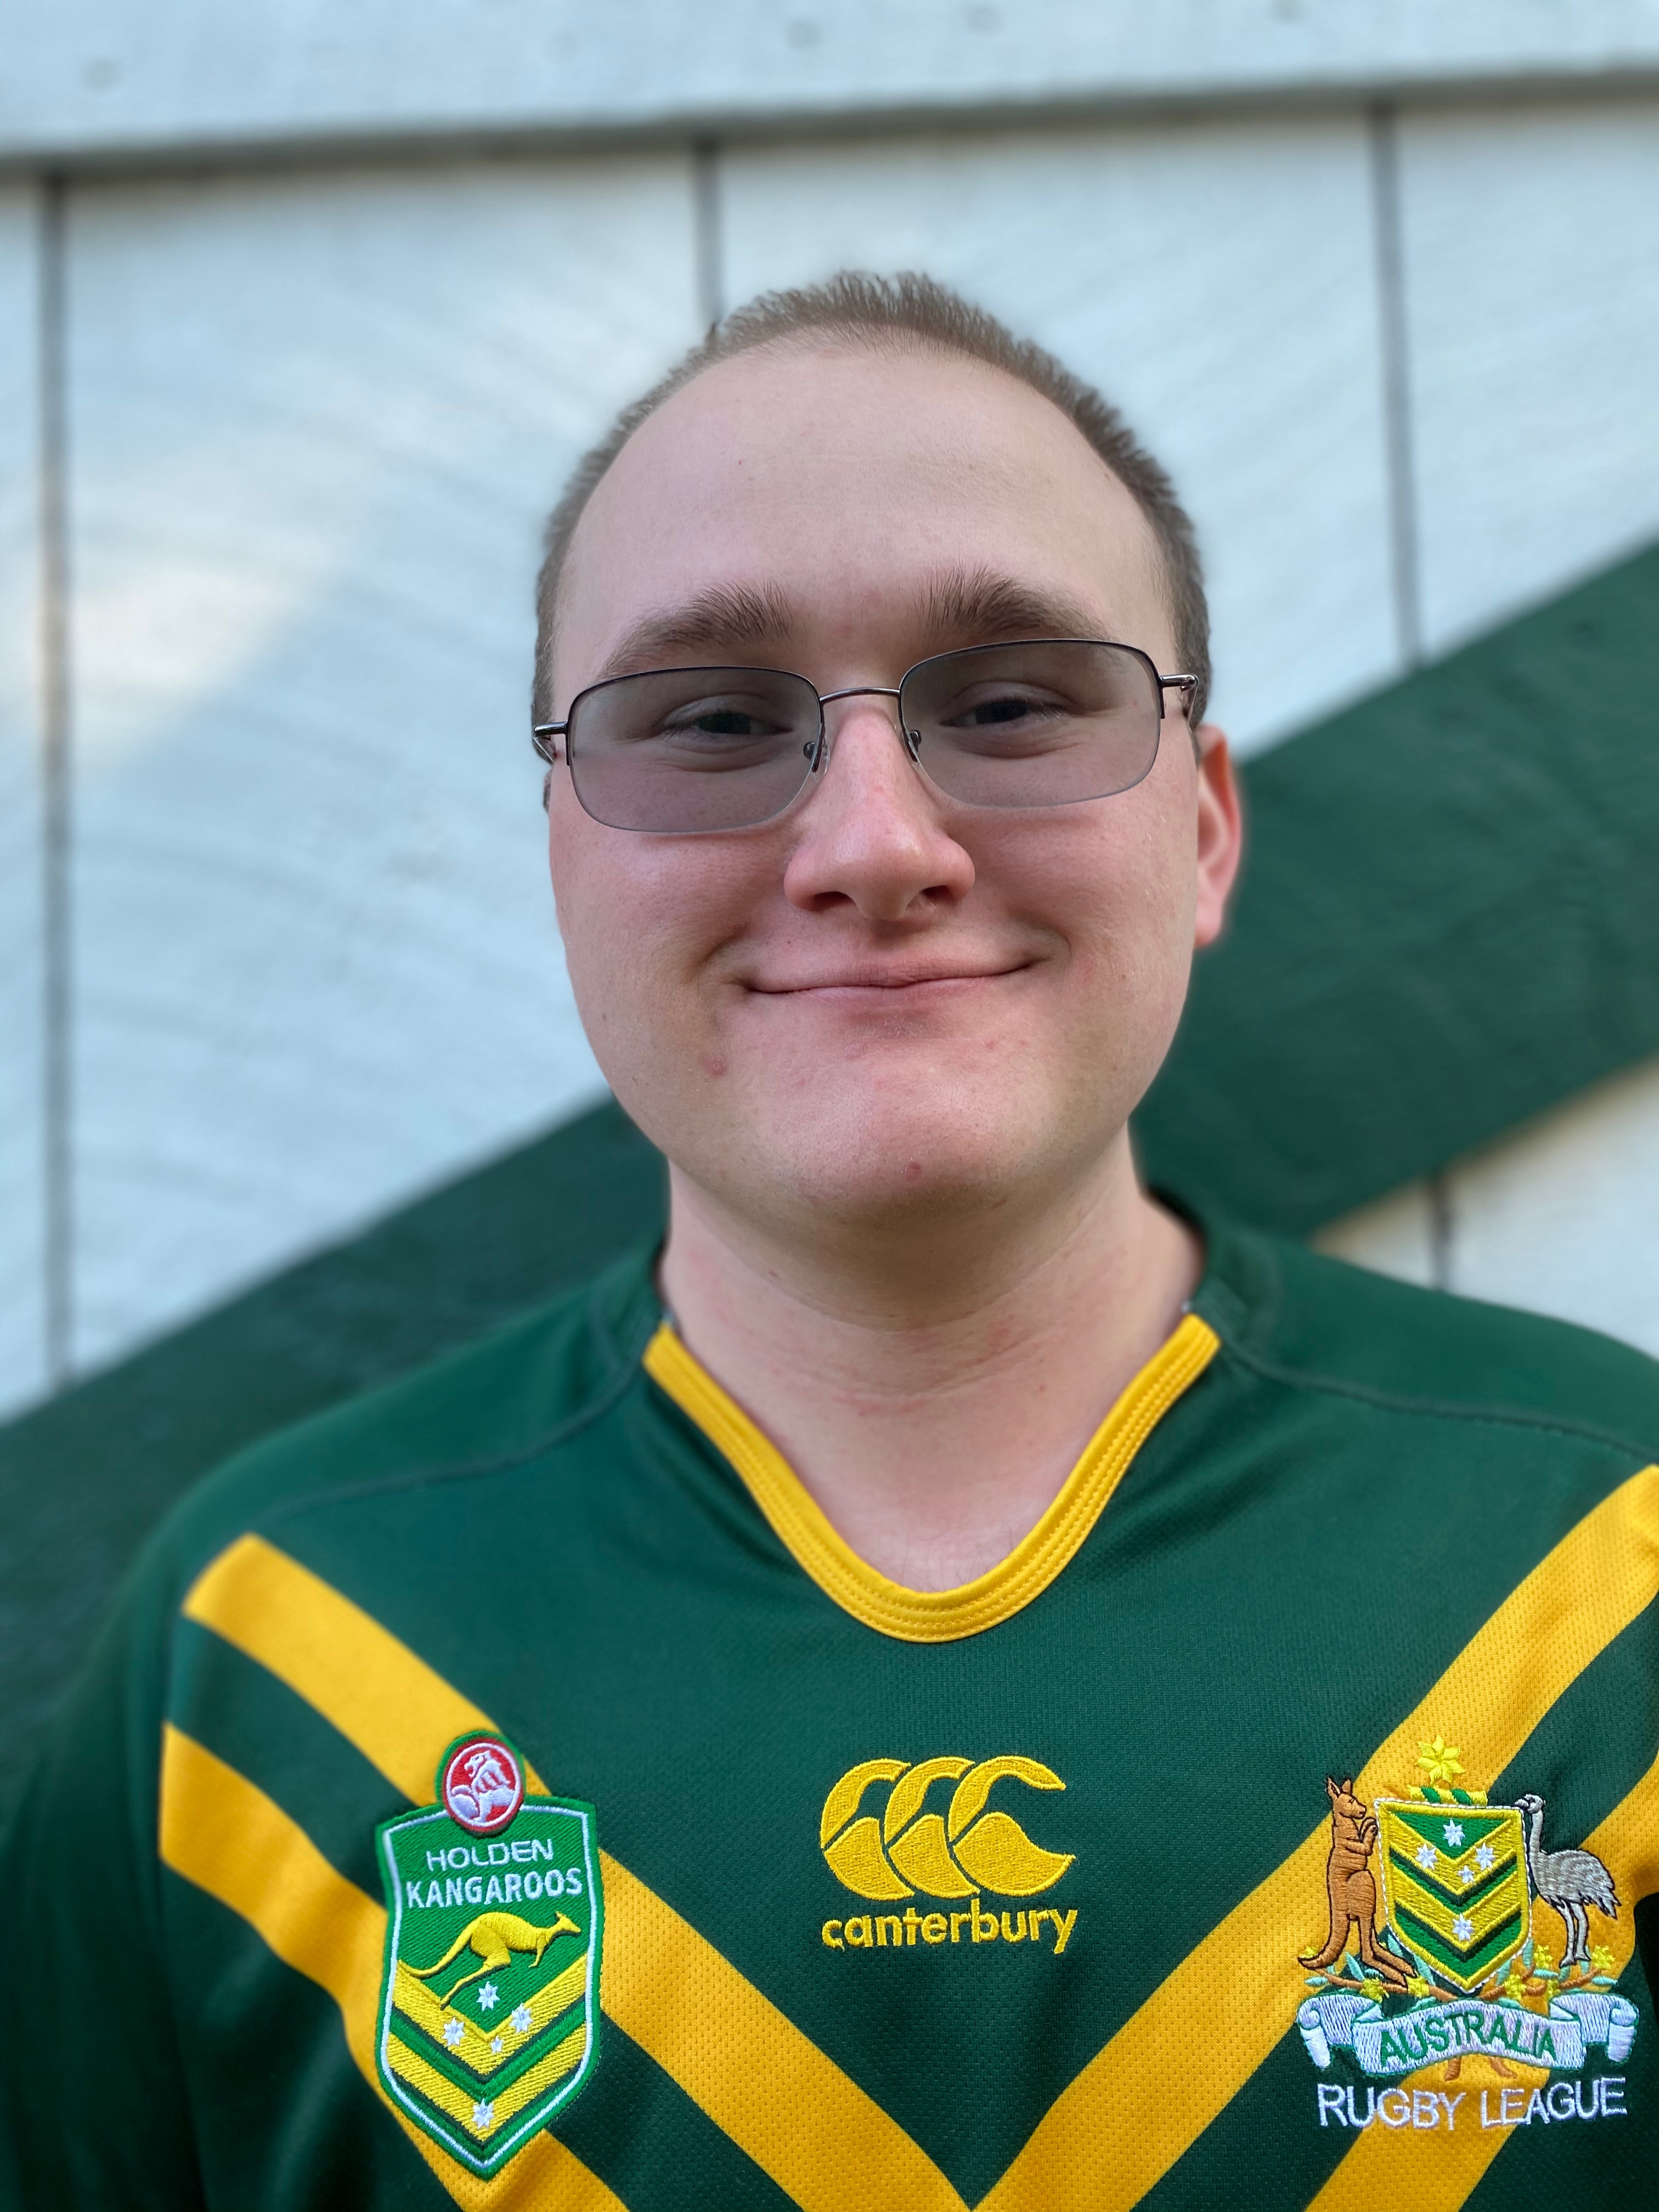 Matthew Sweeney smiling and wearing a green jersey.